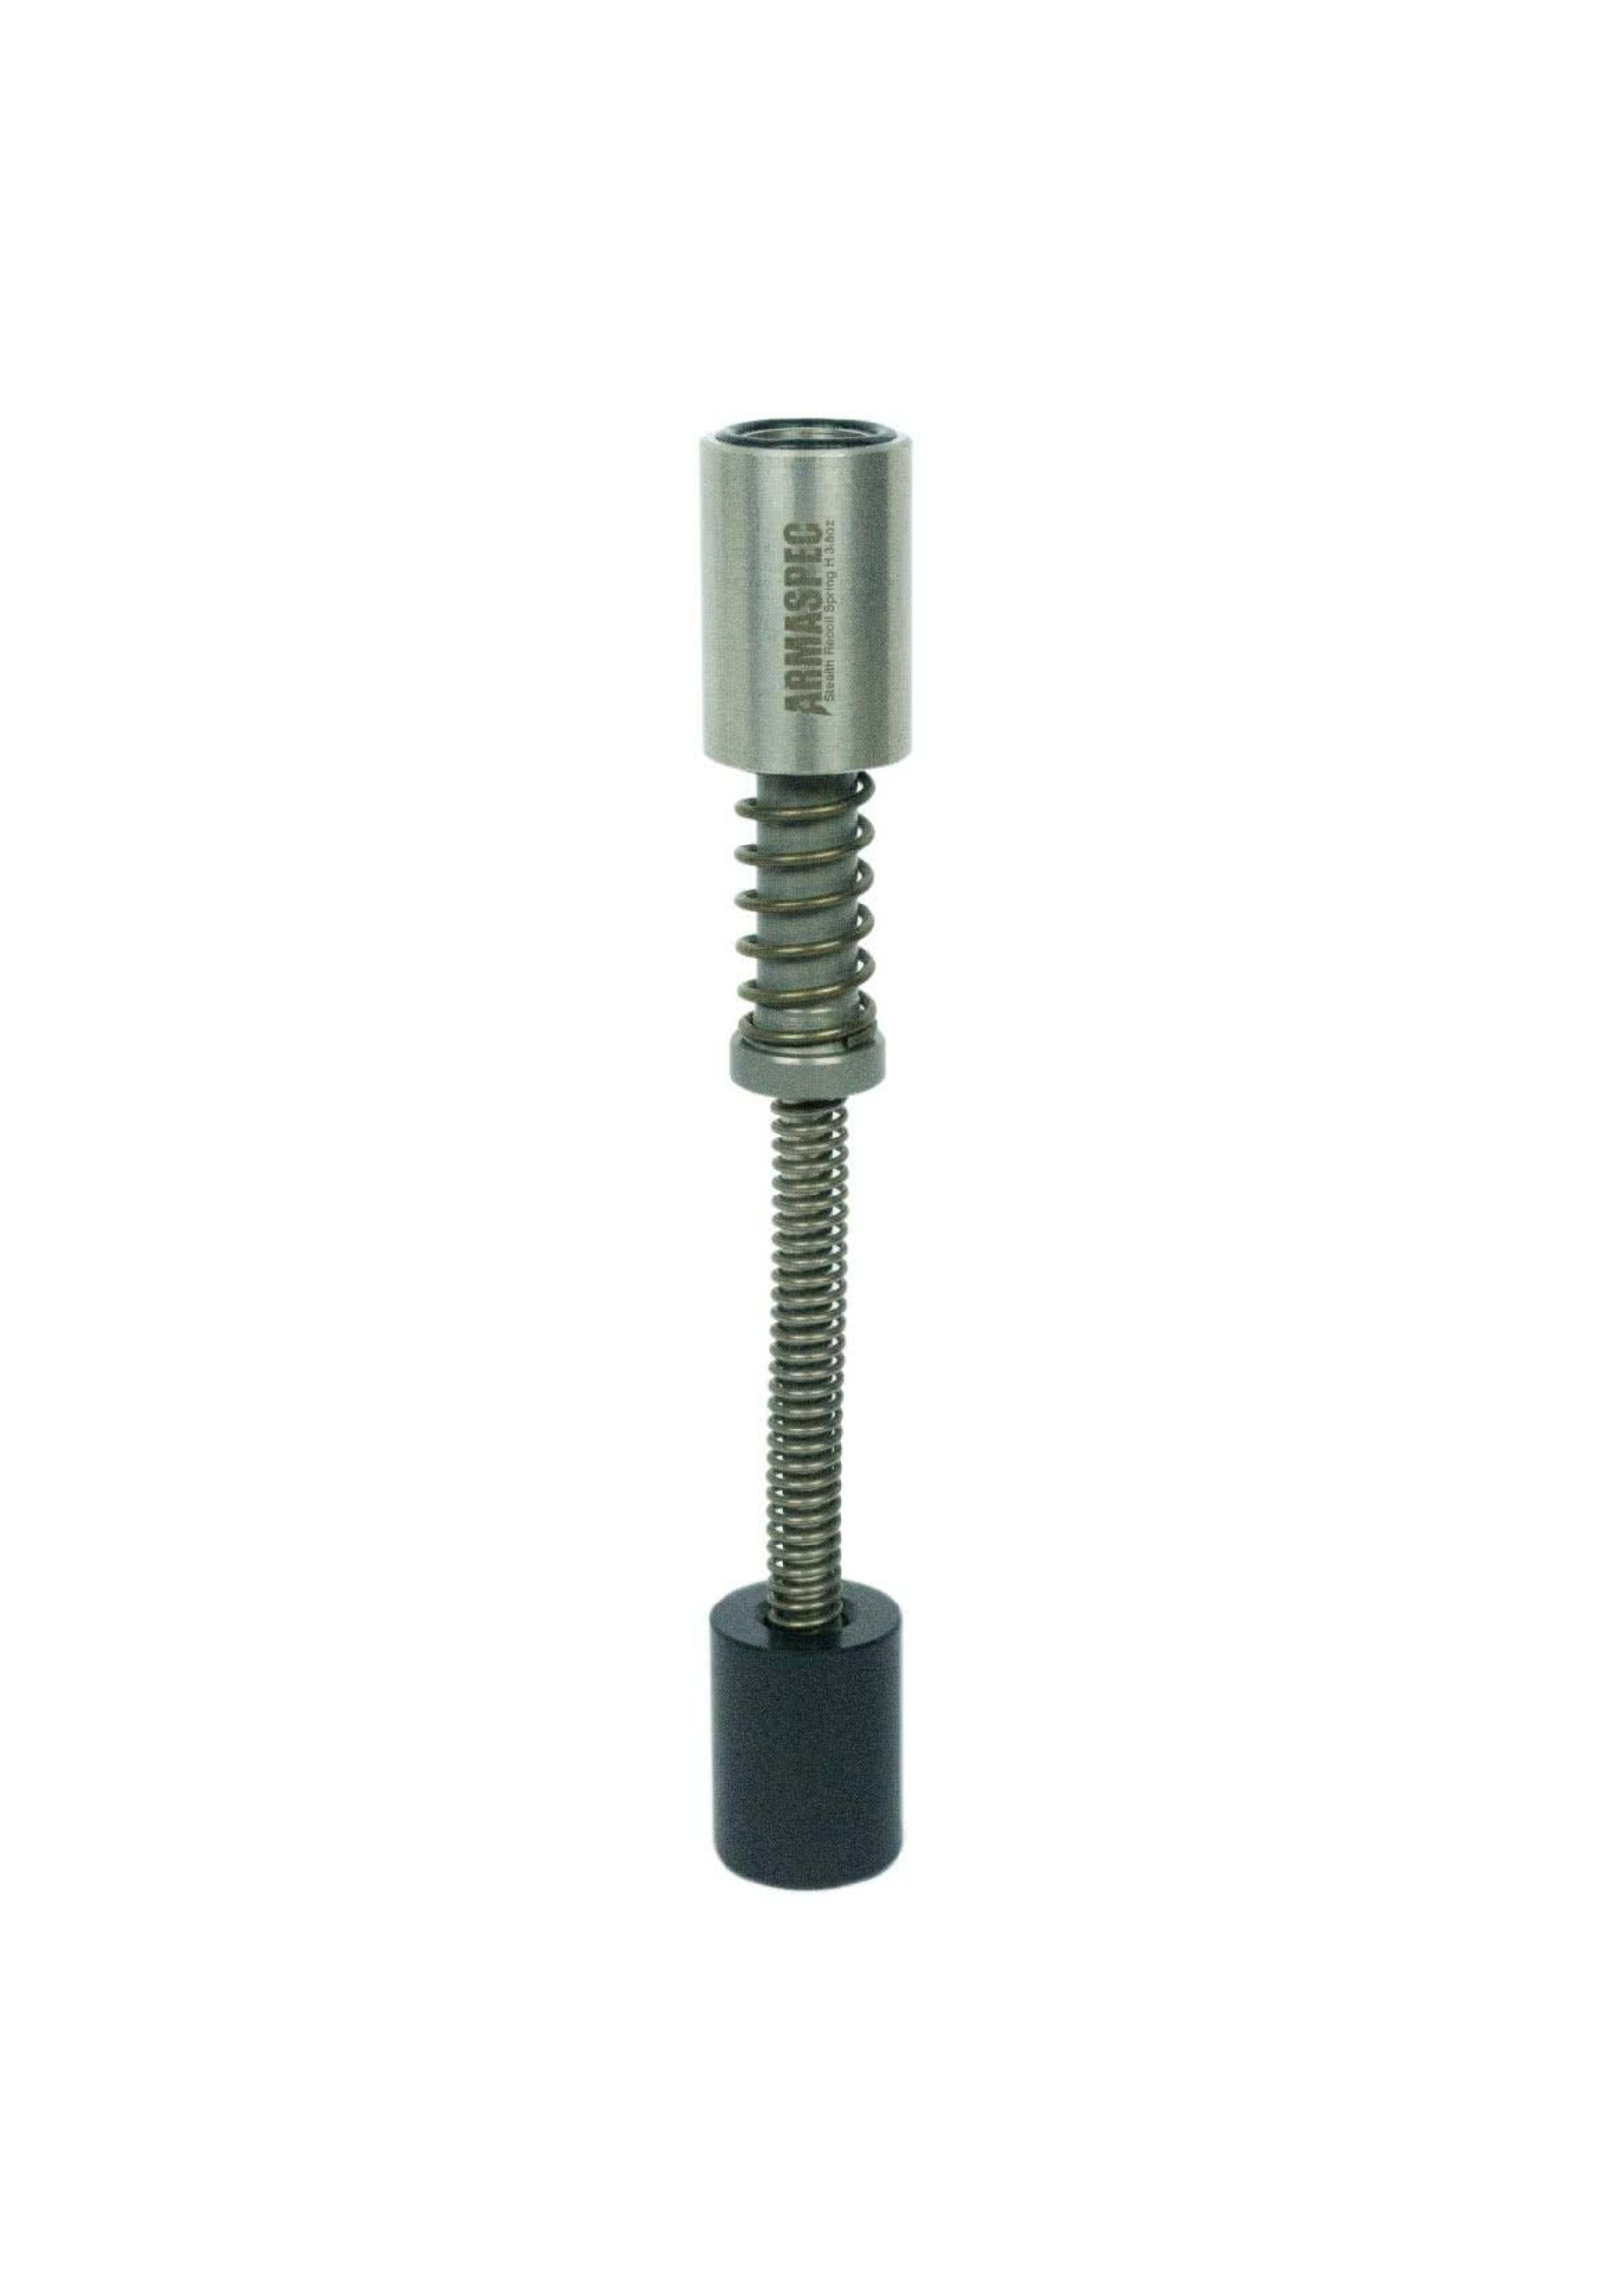 Armaspec Armaspec, Stealth Recoil Spring, SRS-Carbine, 3.3oz., Black, Replacement  for Standard Buffer and Spring